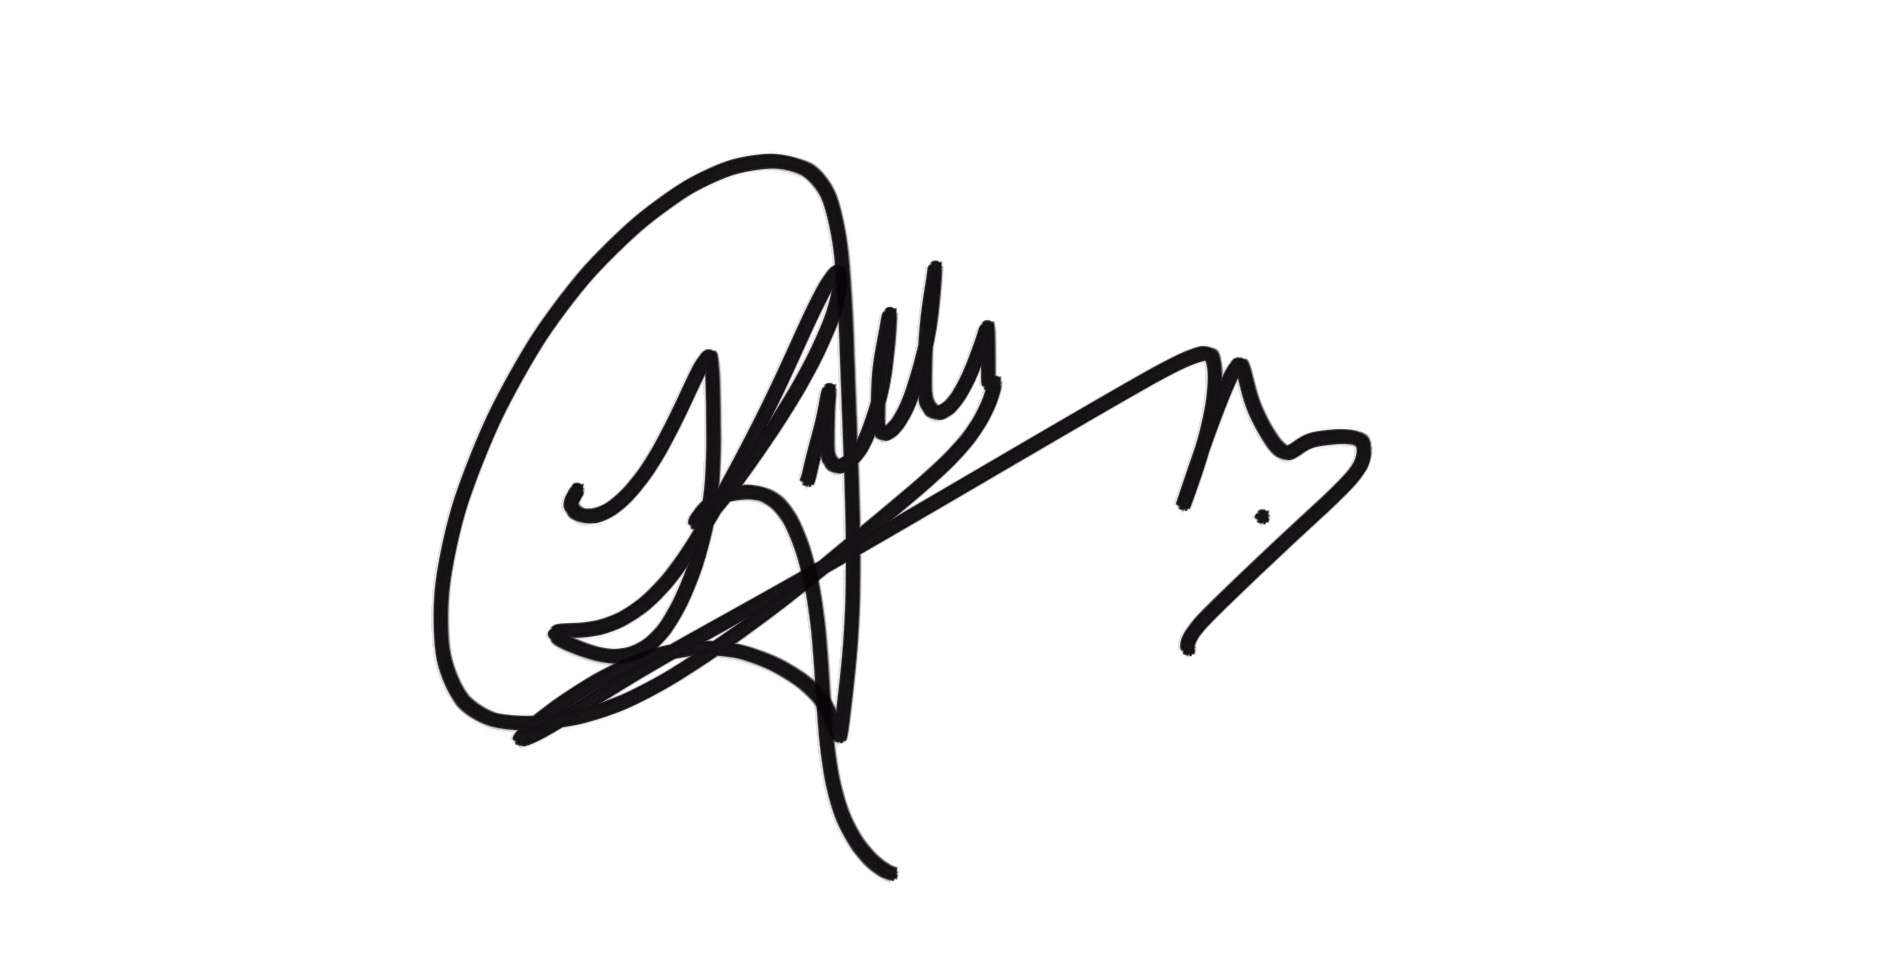 kelly u johnson's Signature